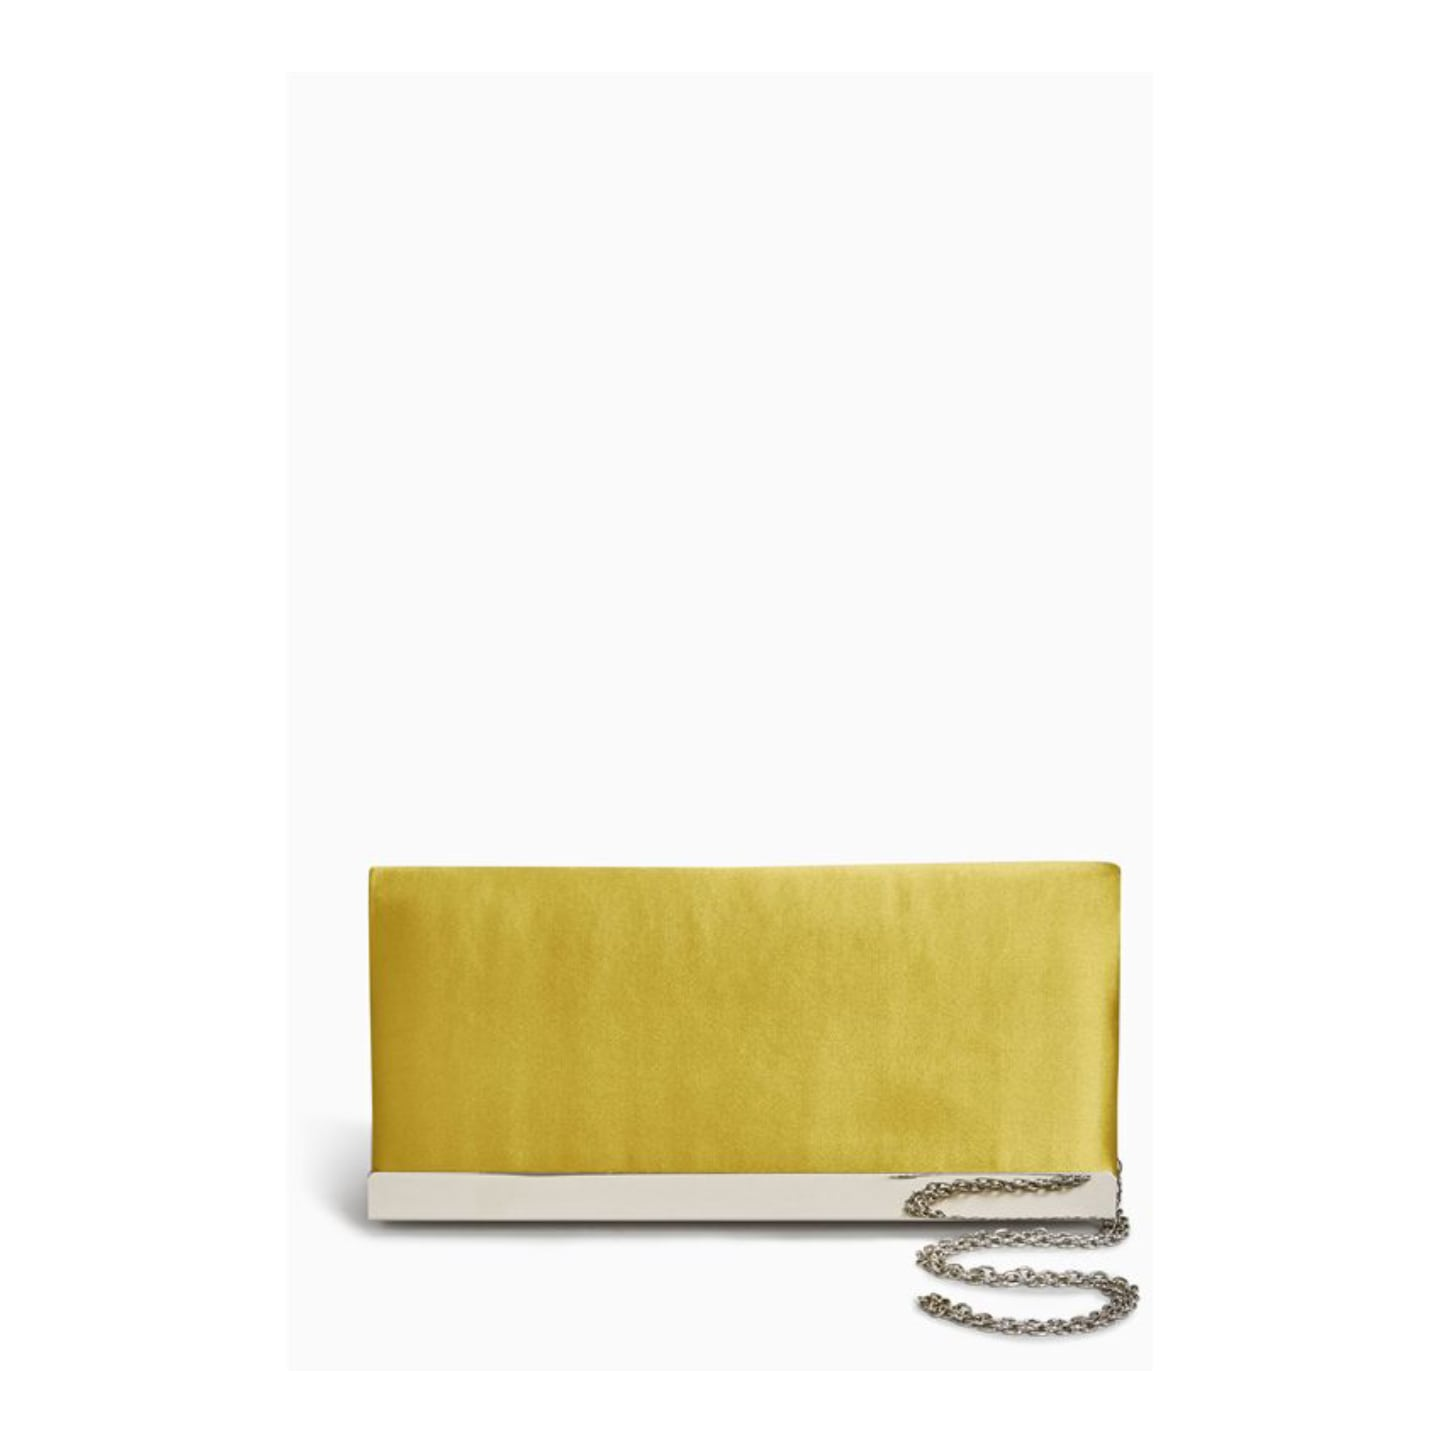 Next Citrine Satin Long Clutch Bag